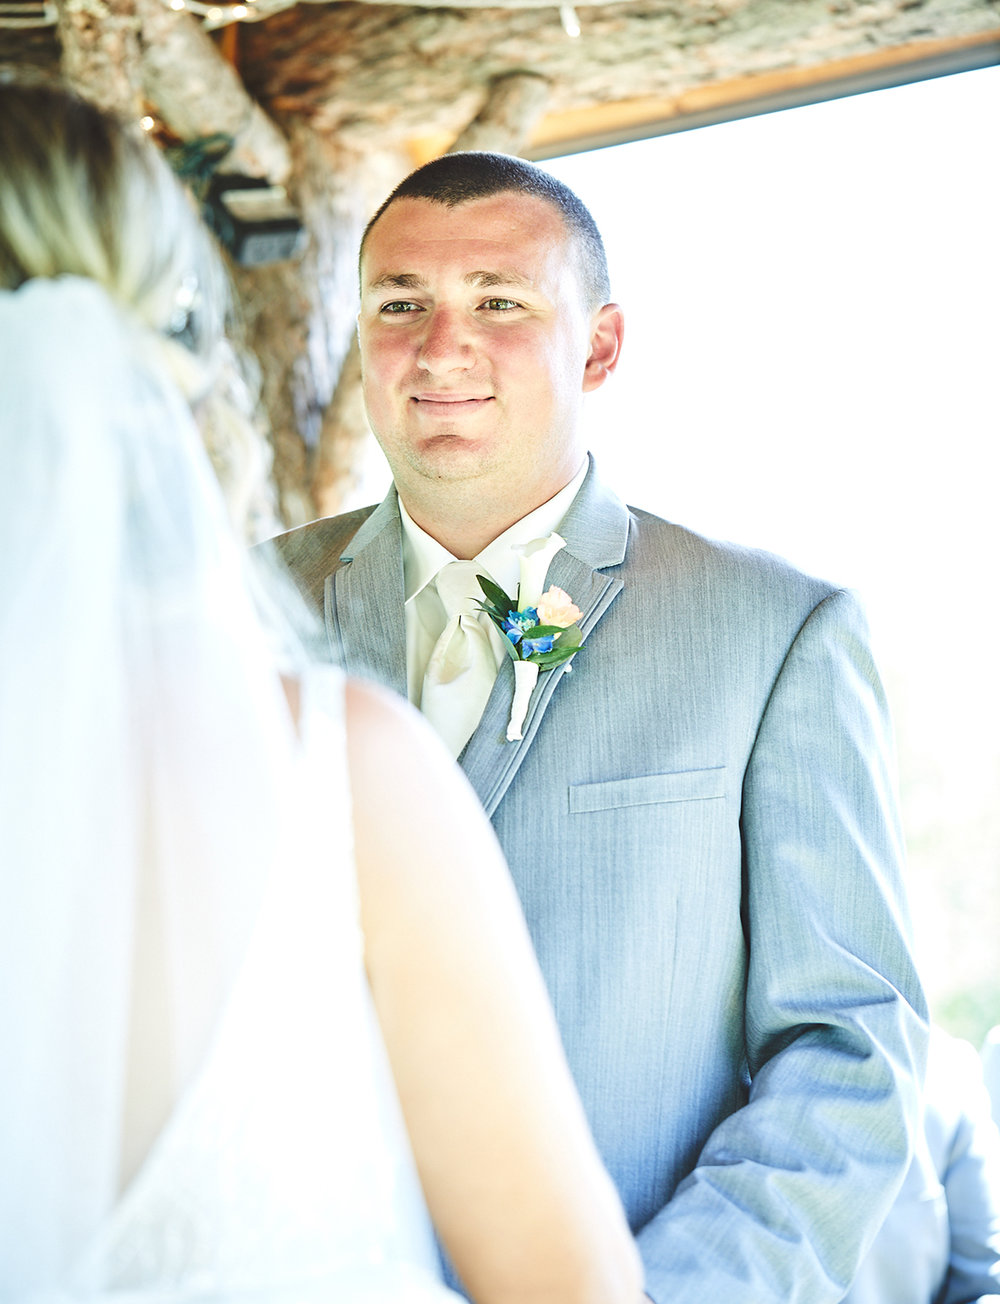 180811_RosebudEstatesWeddingPhotography_WesternNYWeddingPhotographer_By_BriJohnsonWeddings_0093.jpg